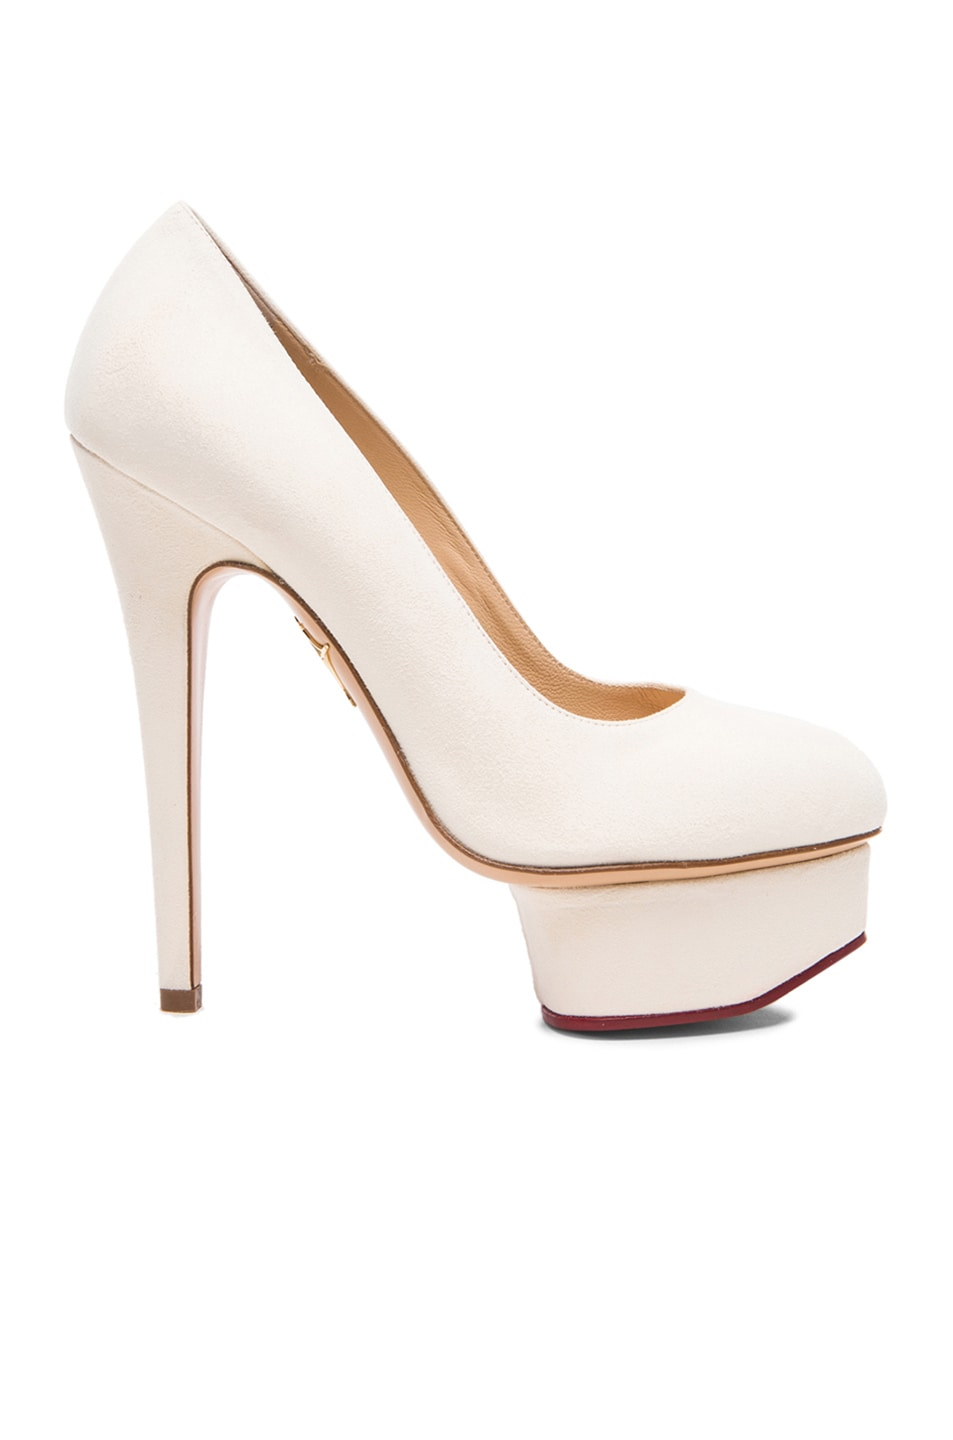 Image 1 of Charlotte Olympia Hot Dolly Suede Pumps in Blanca